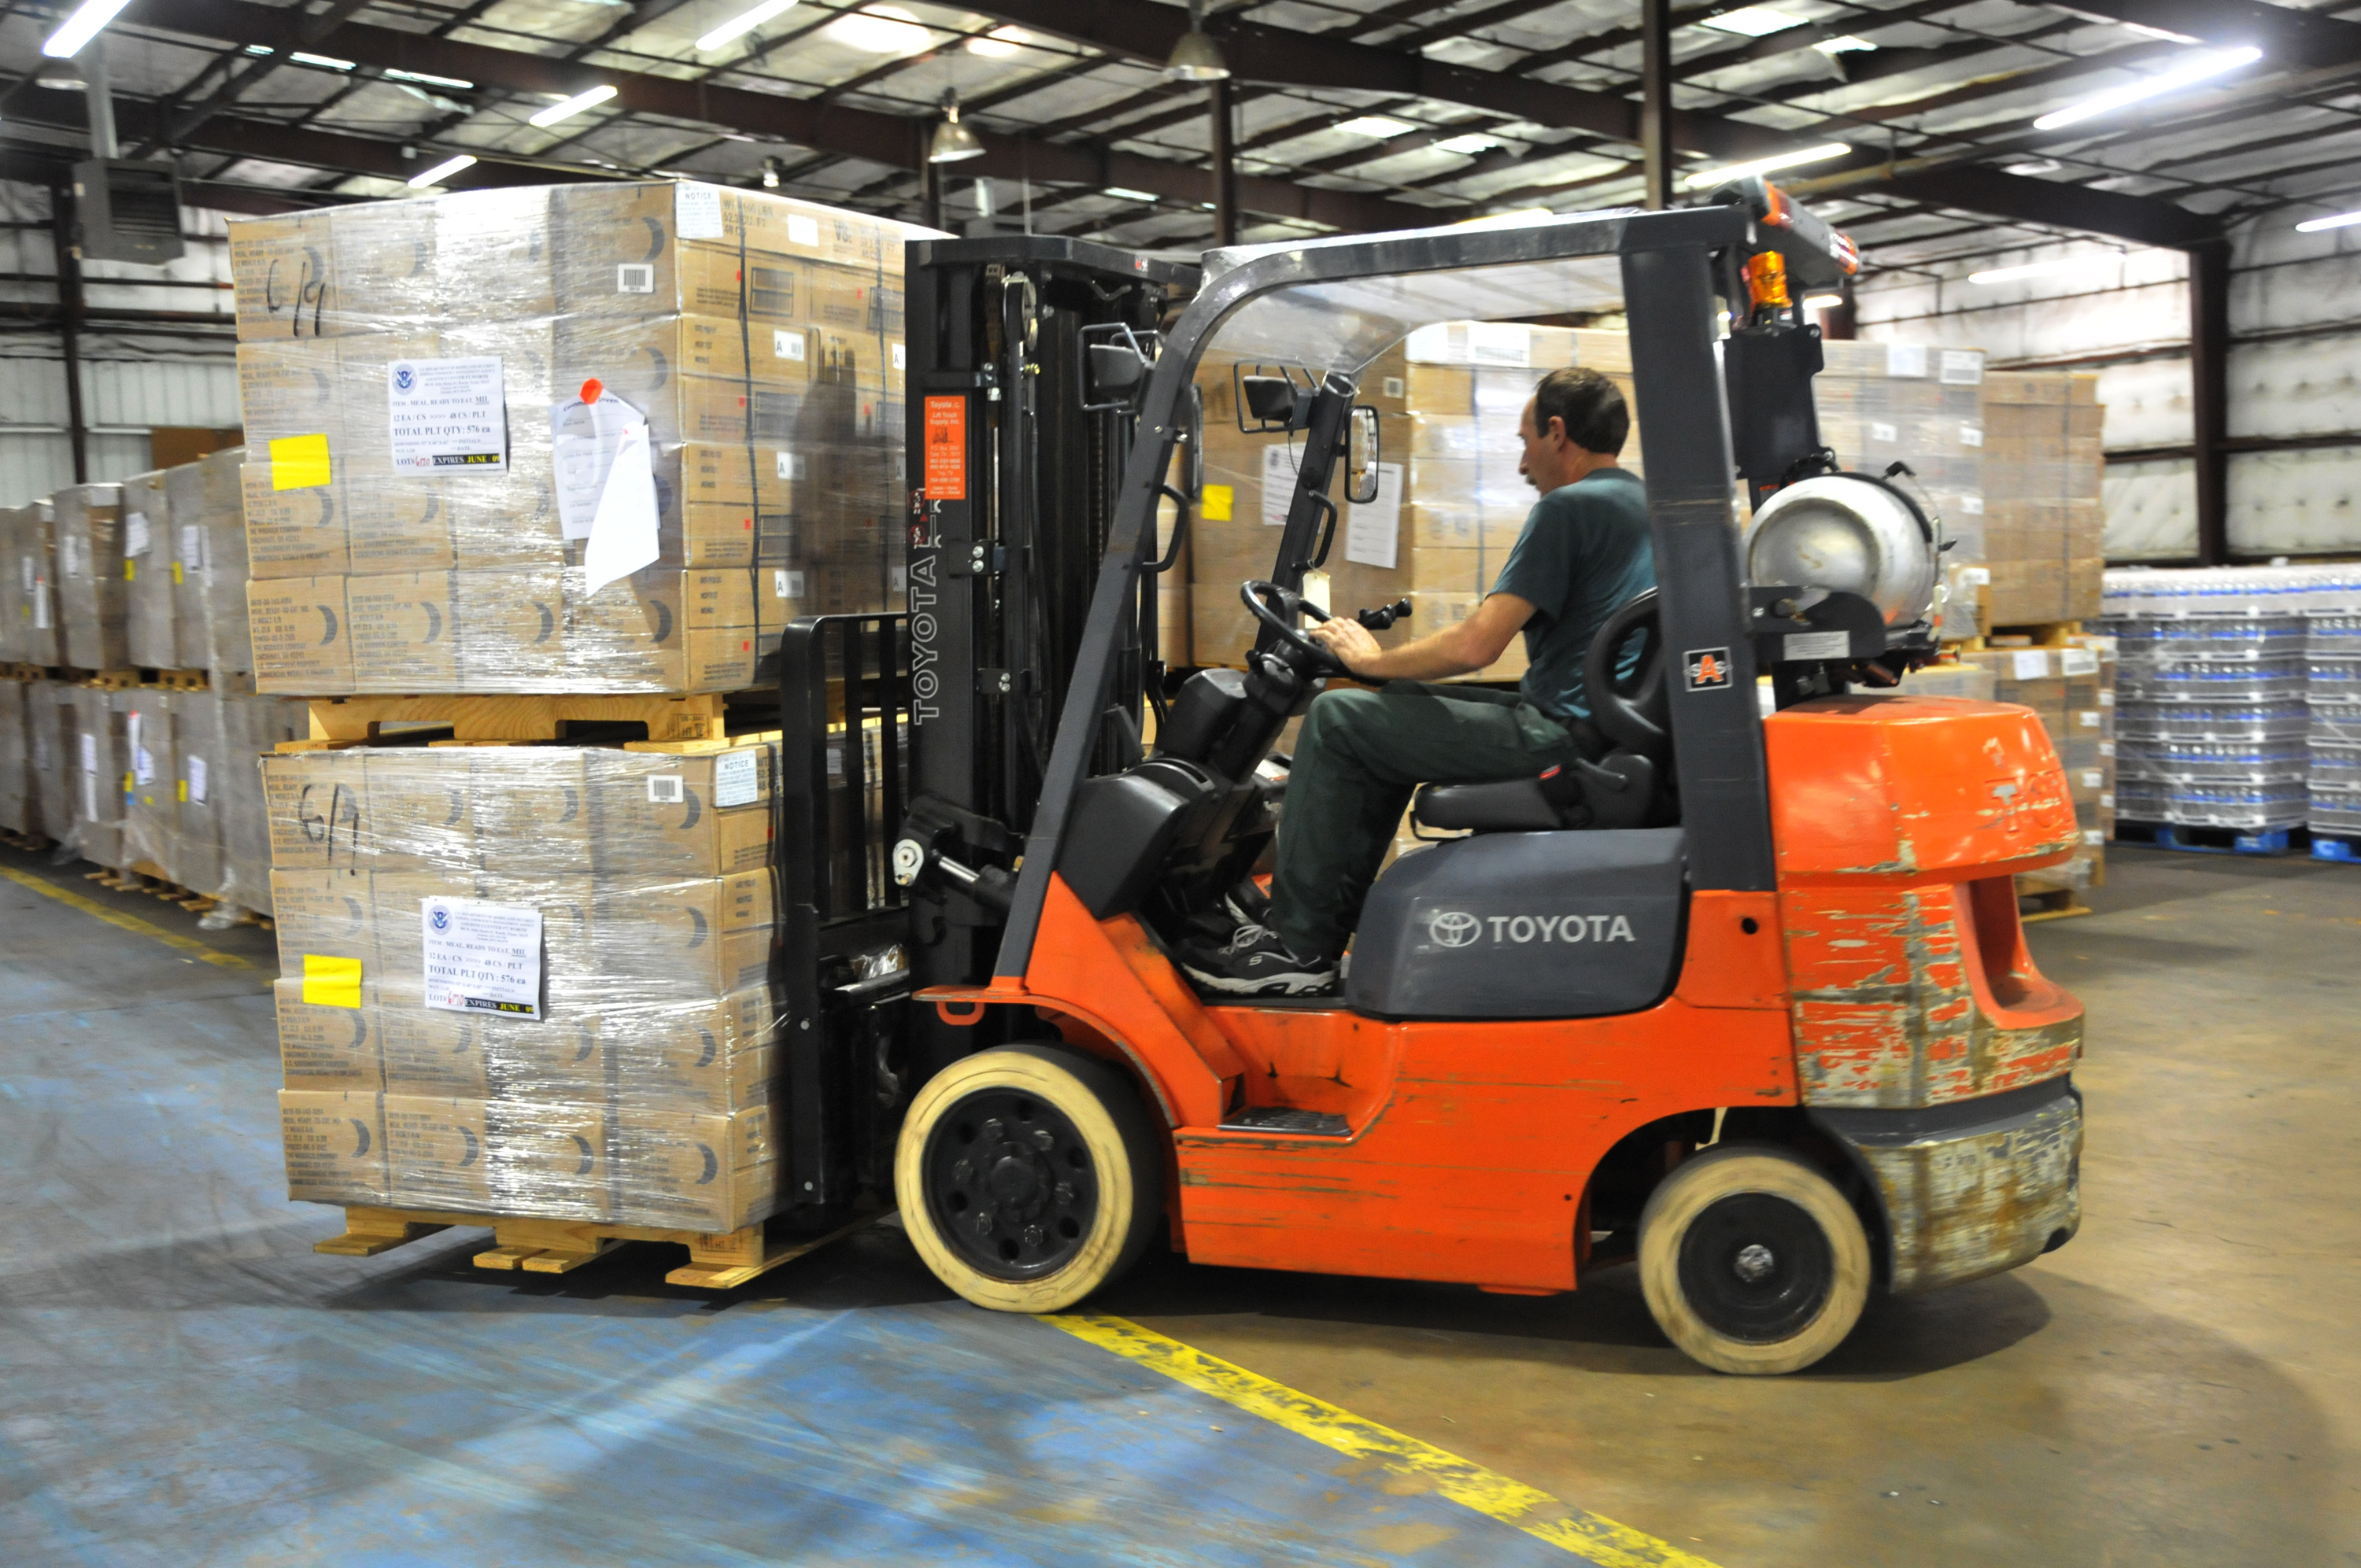 FEMA_-_37931_-_Meals_Ready_to_Eat_being_moved_by_fork_lift_in_a_Texas_warehouse